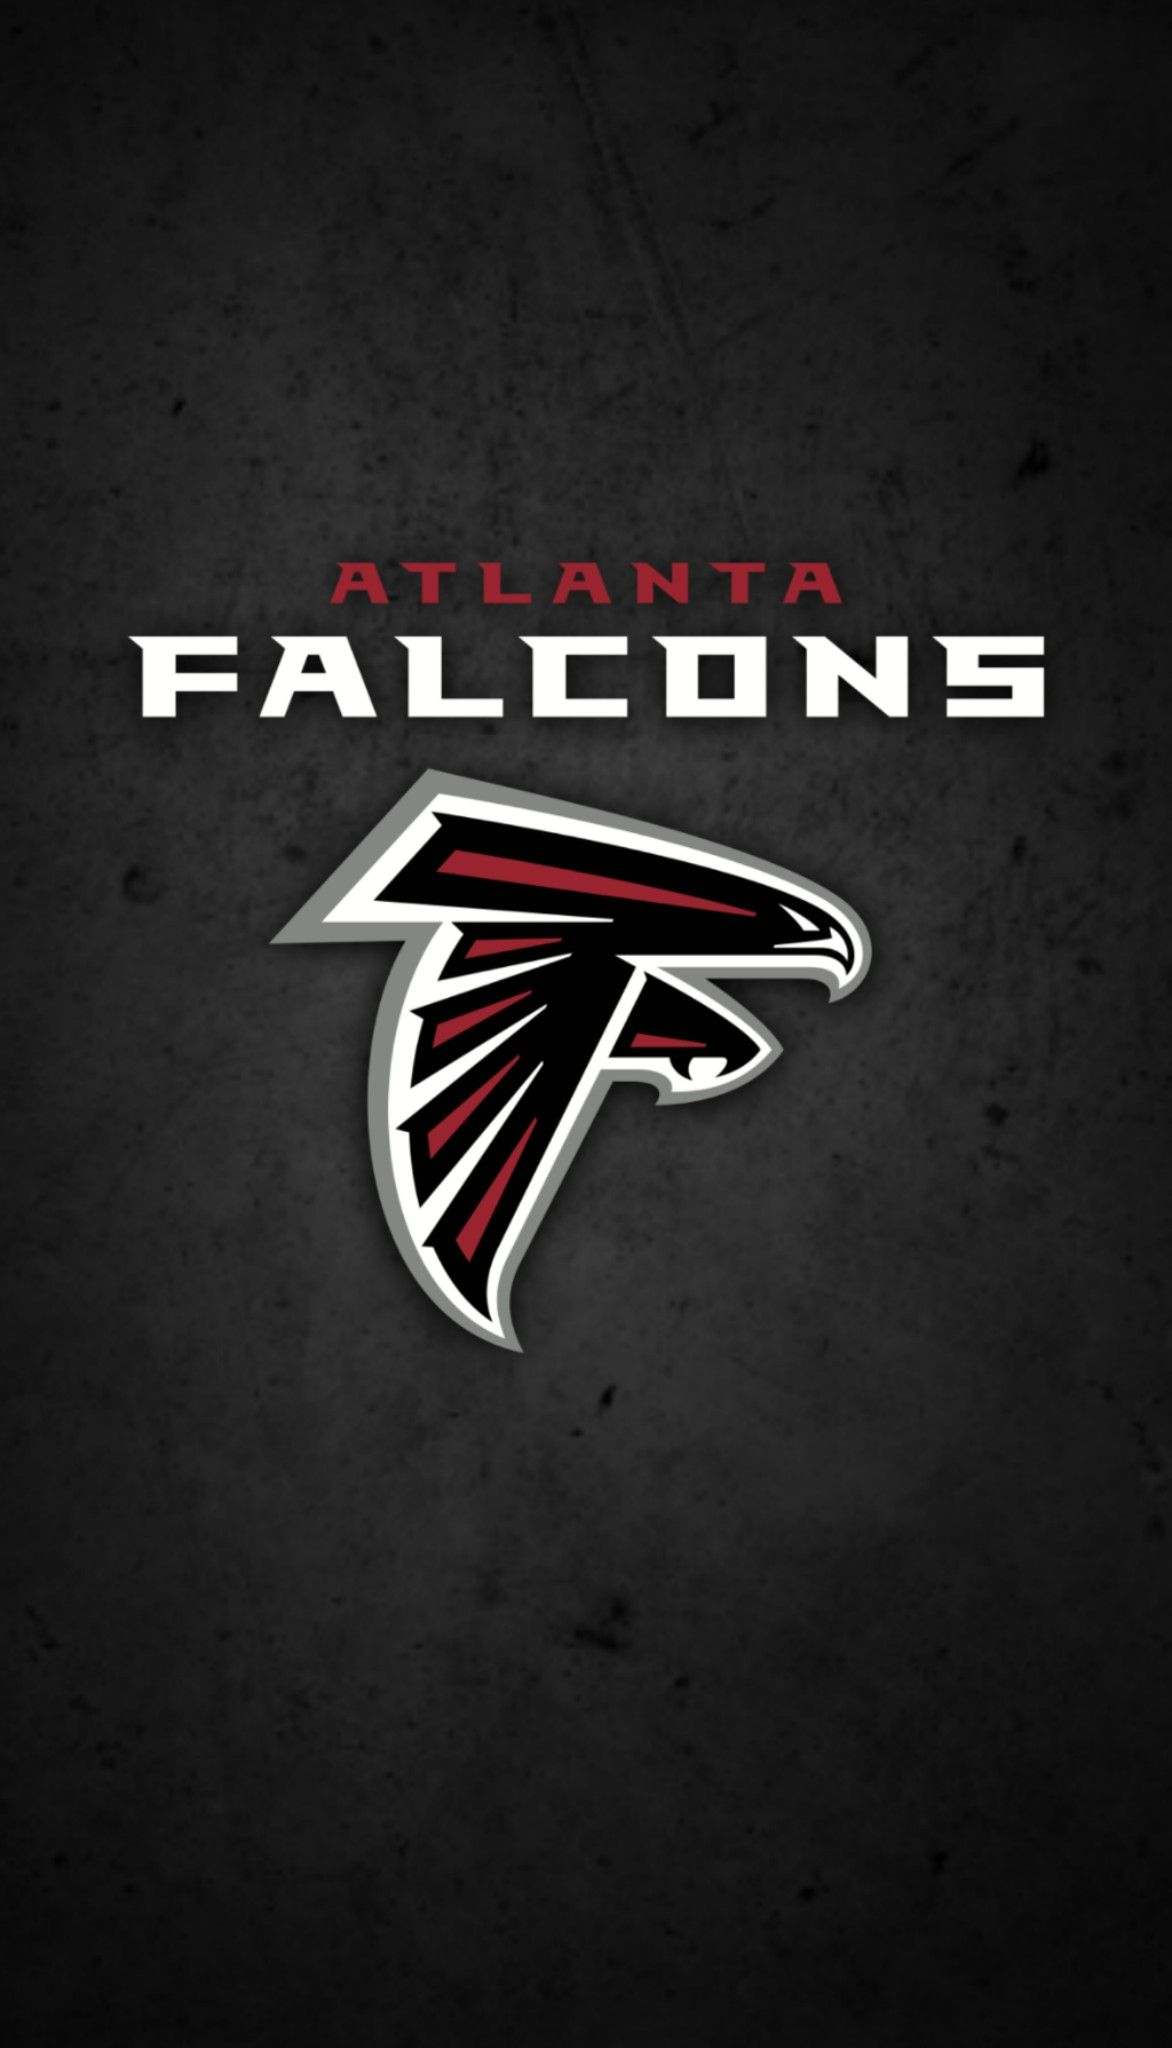 Pin By Lindsey Yopp On Atlanta Falcons Wallpaper In 2020 Atlanta Falcons Logo Atlanta Falcons Football Atlanta Falcons Art